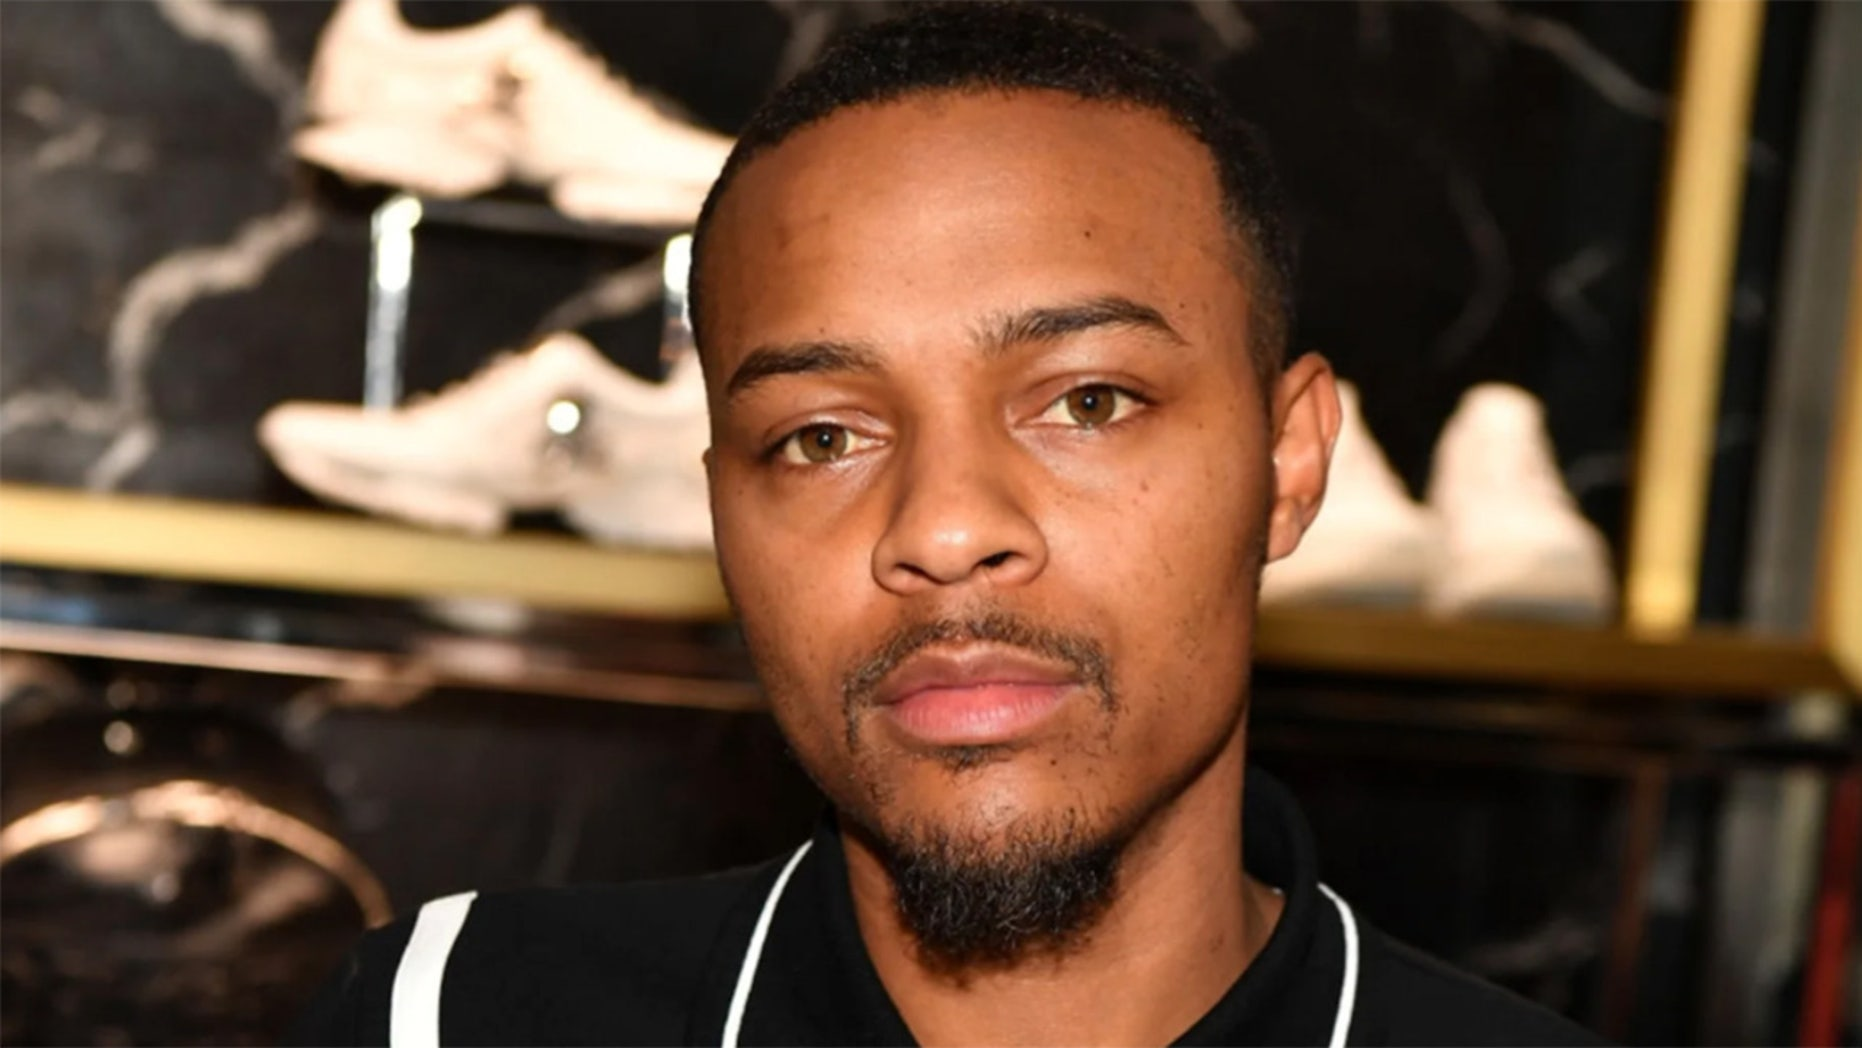 Rapper Bow Wow defends himself against criticism for performing in packed club amid coronavirus pandemic